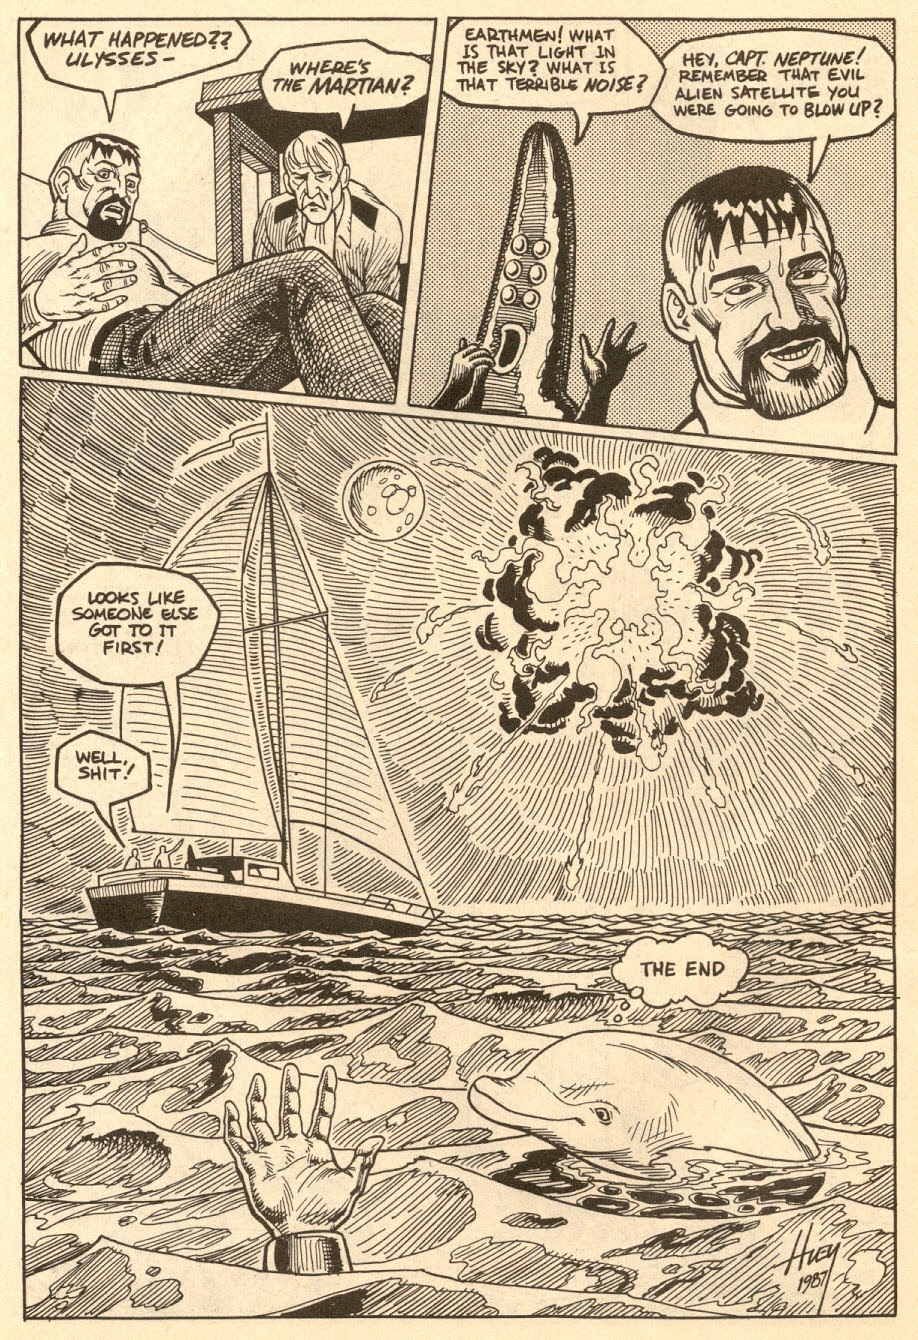 Commies from Mars: The Red Planet issue 6 - Page 25